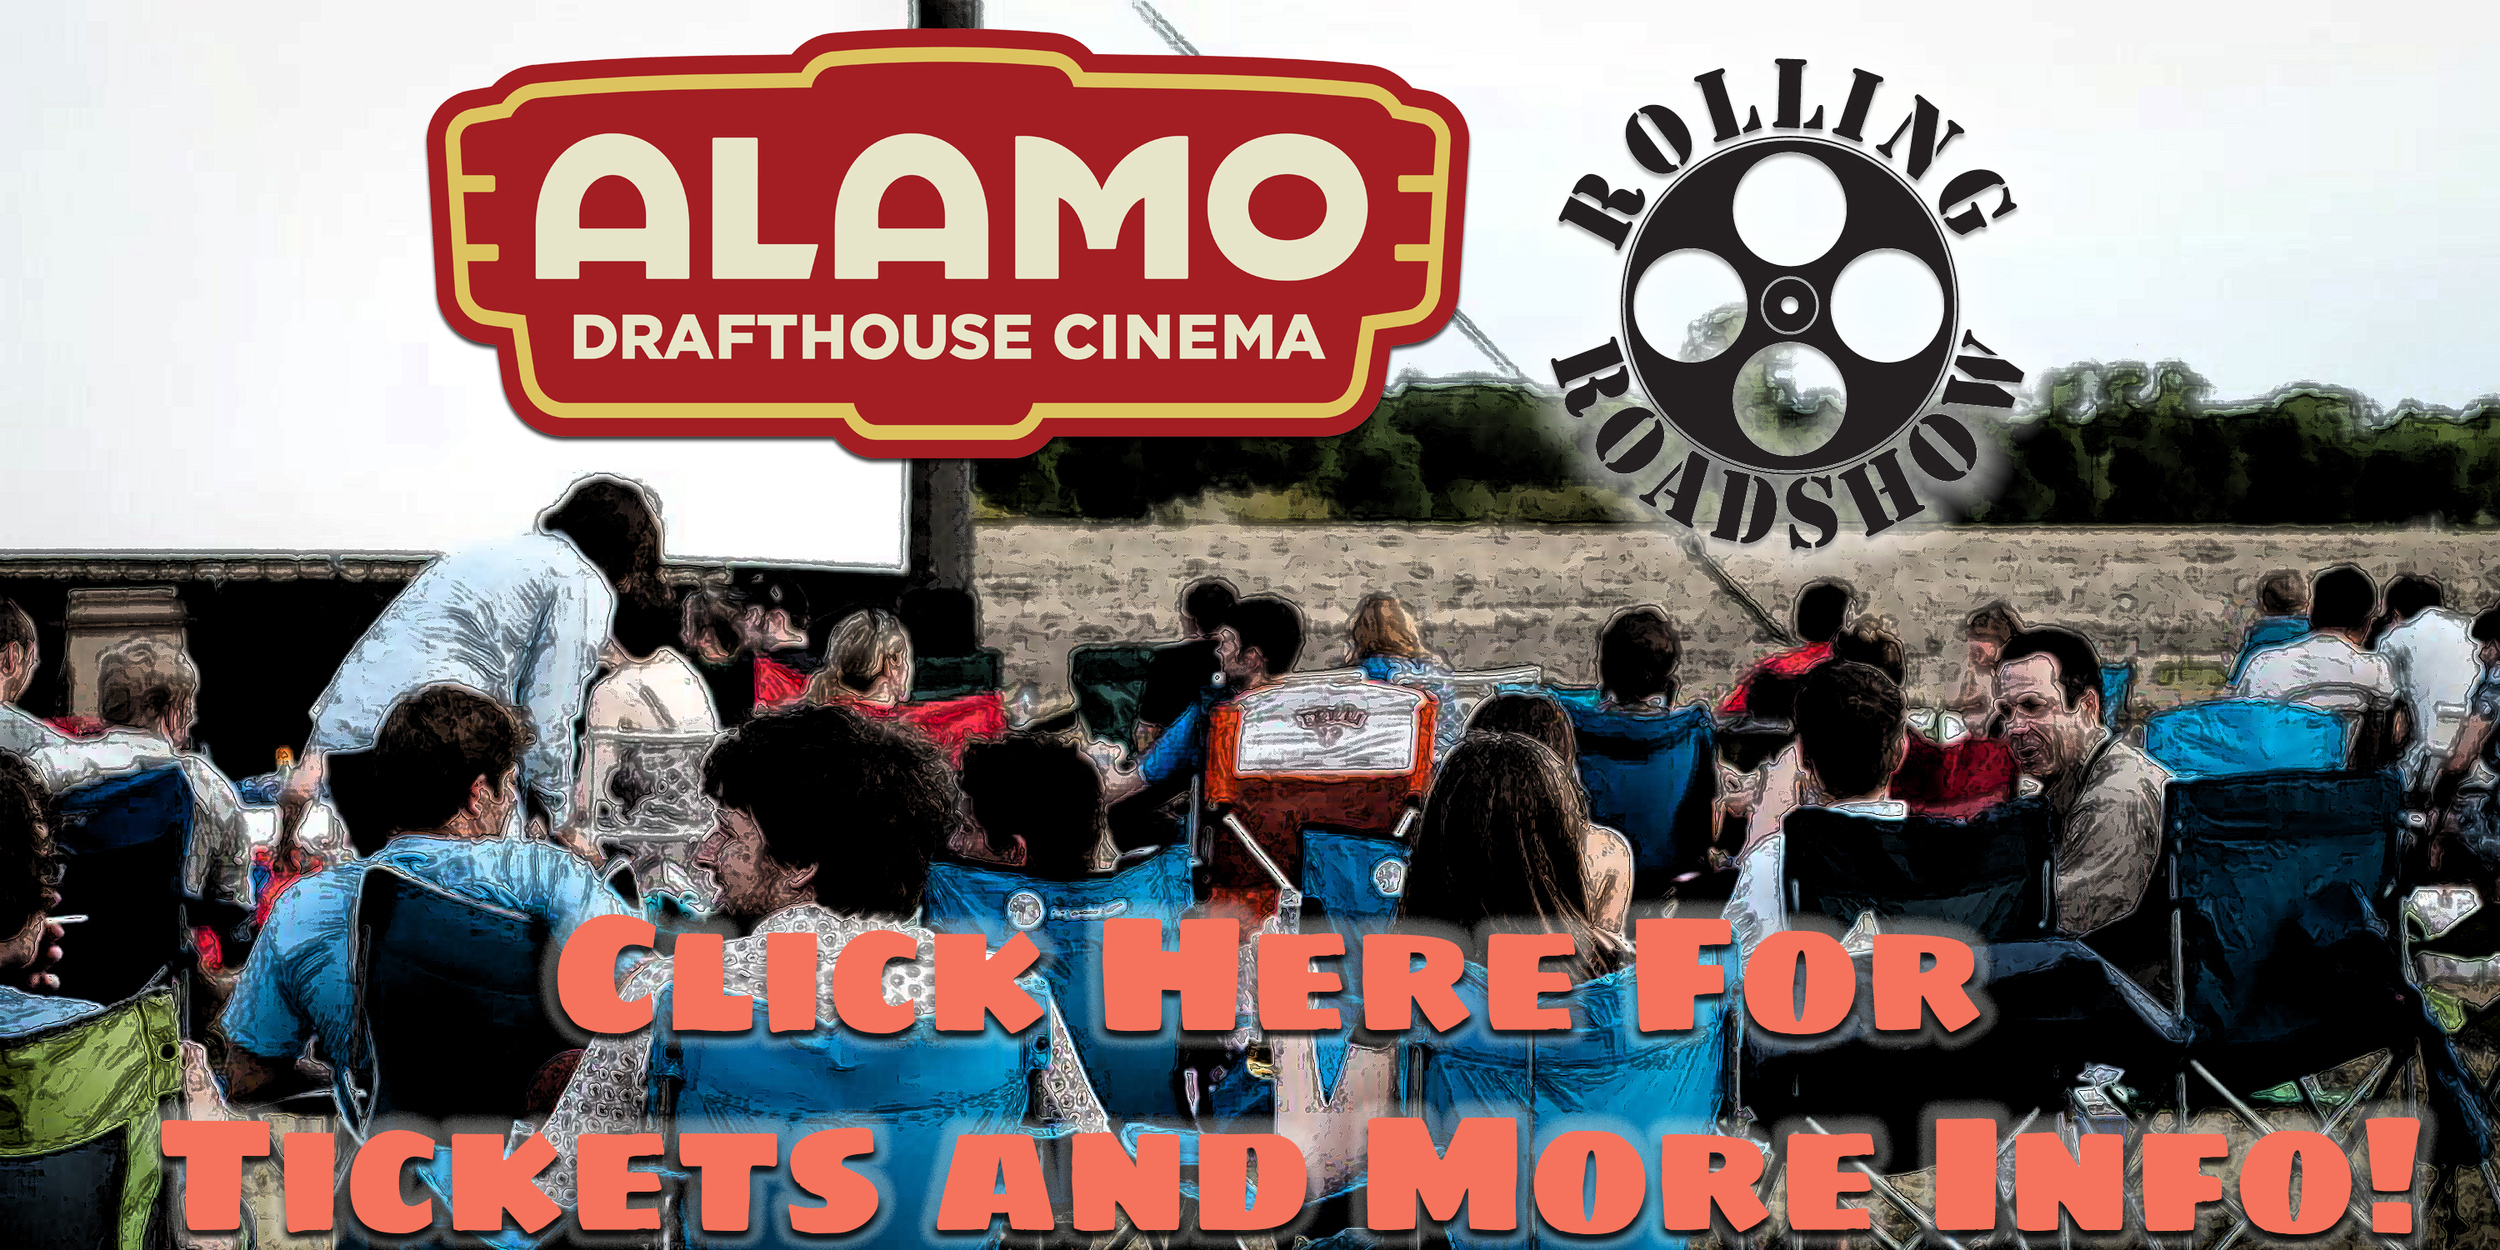 Alamo Drafthouse  will be bringing the  Rolling Roadshow to screen Bottle Rocket on site! There is no better way to see this fantastic film than at the very place it was made! Click the picture above for tickets and more info!